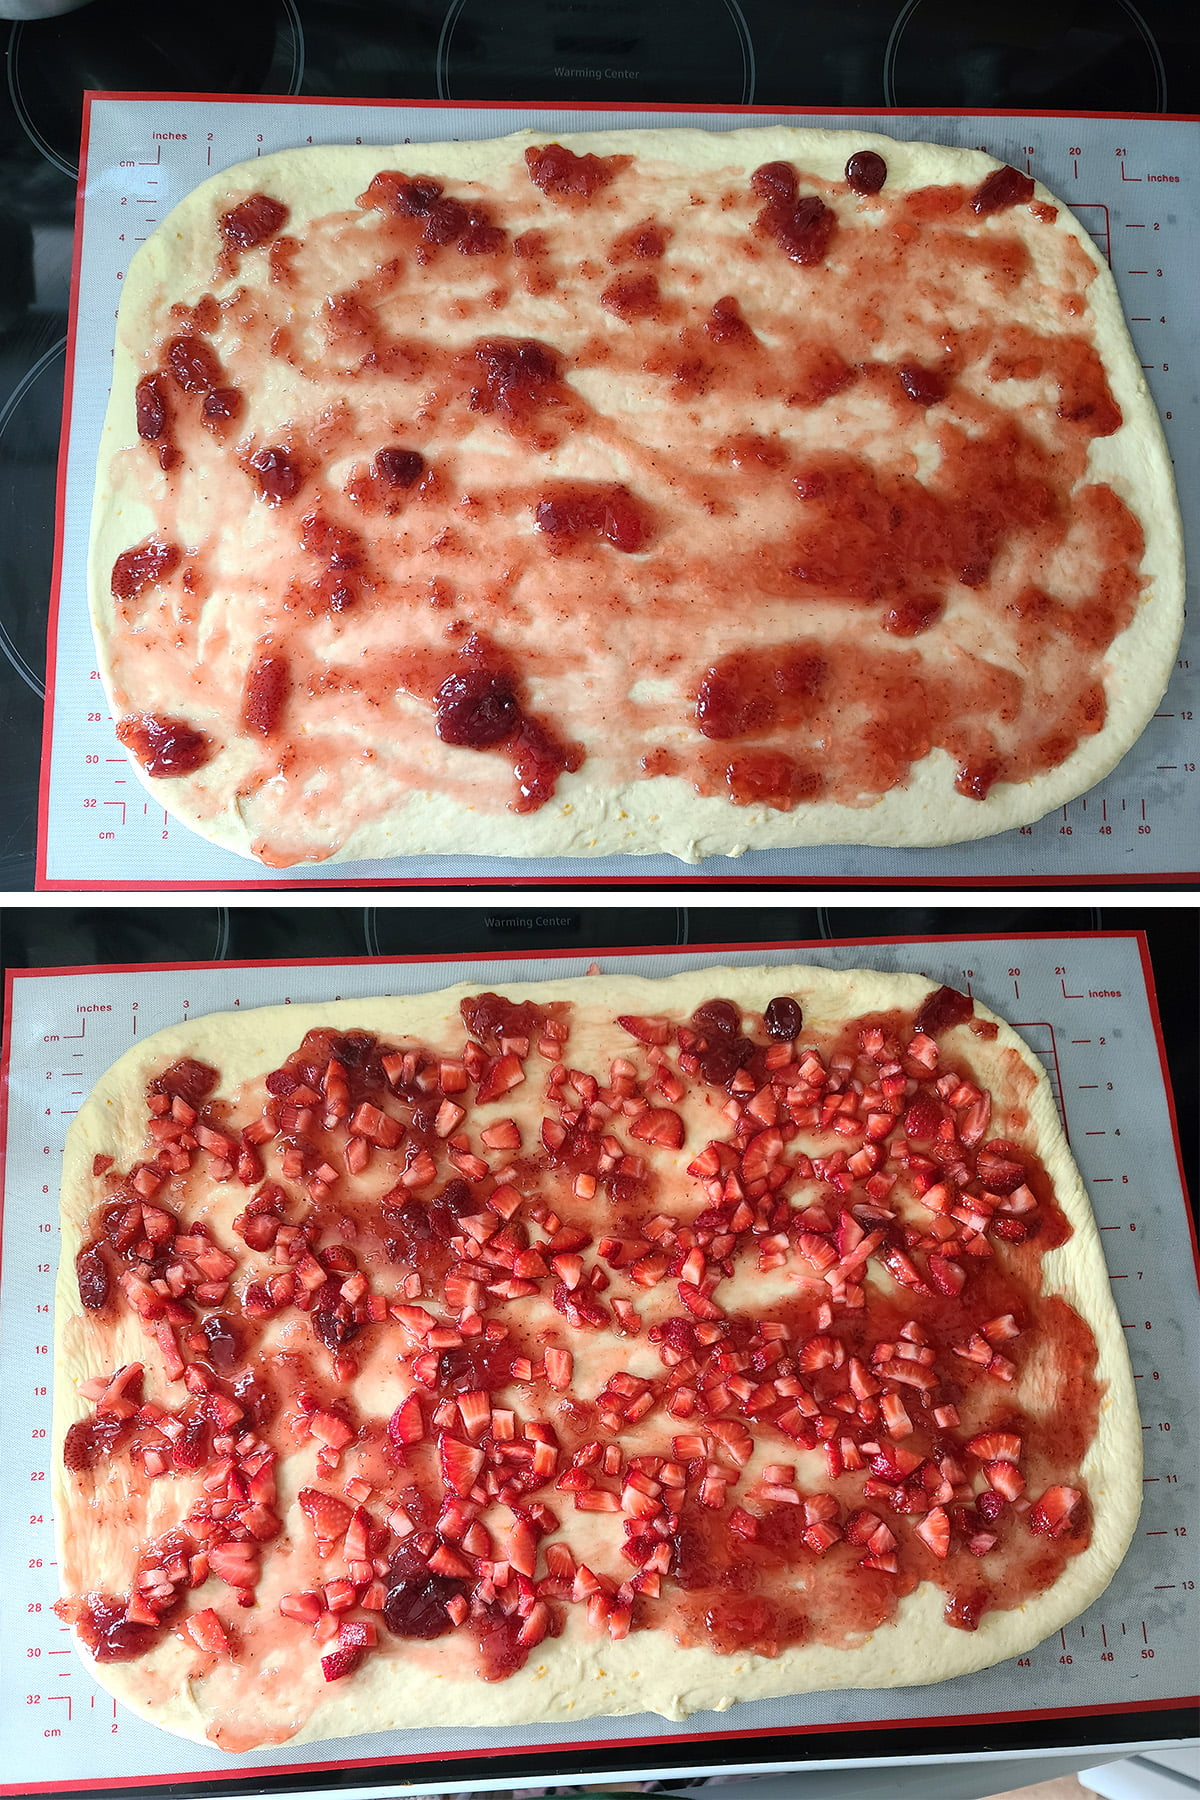 A two part compilation image showing the rectangle of dough being spread with strawberry jam, and then topped with the chopped strawberries mixture.